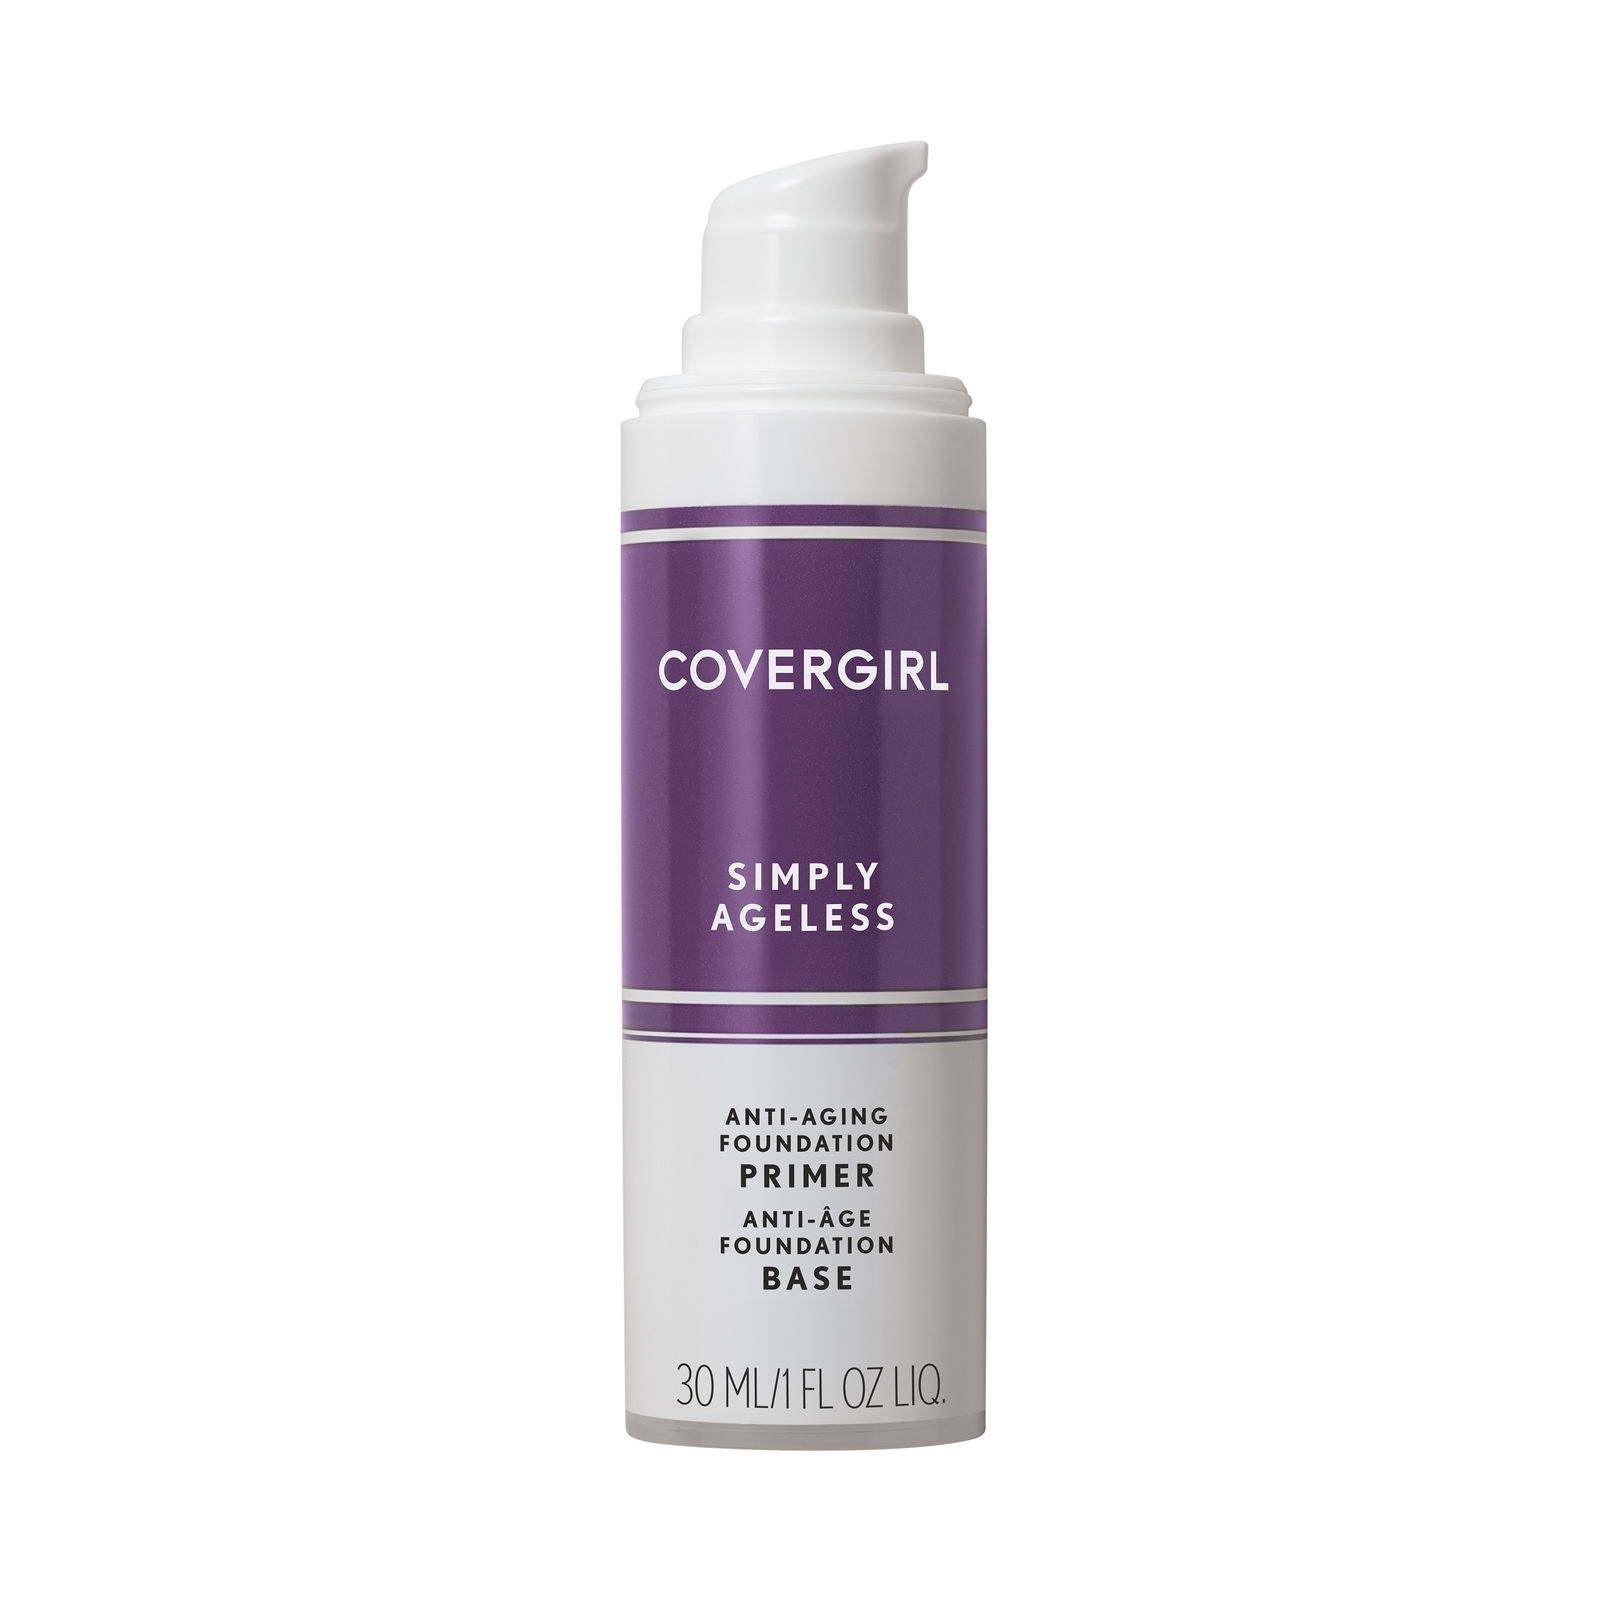 COVERGIRL Simply Ageless Primer Best makeup primer